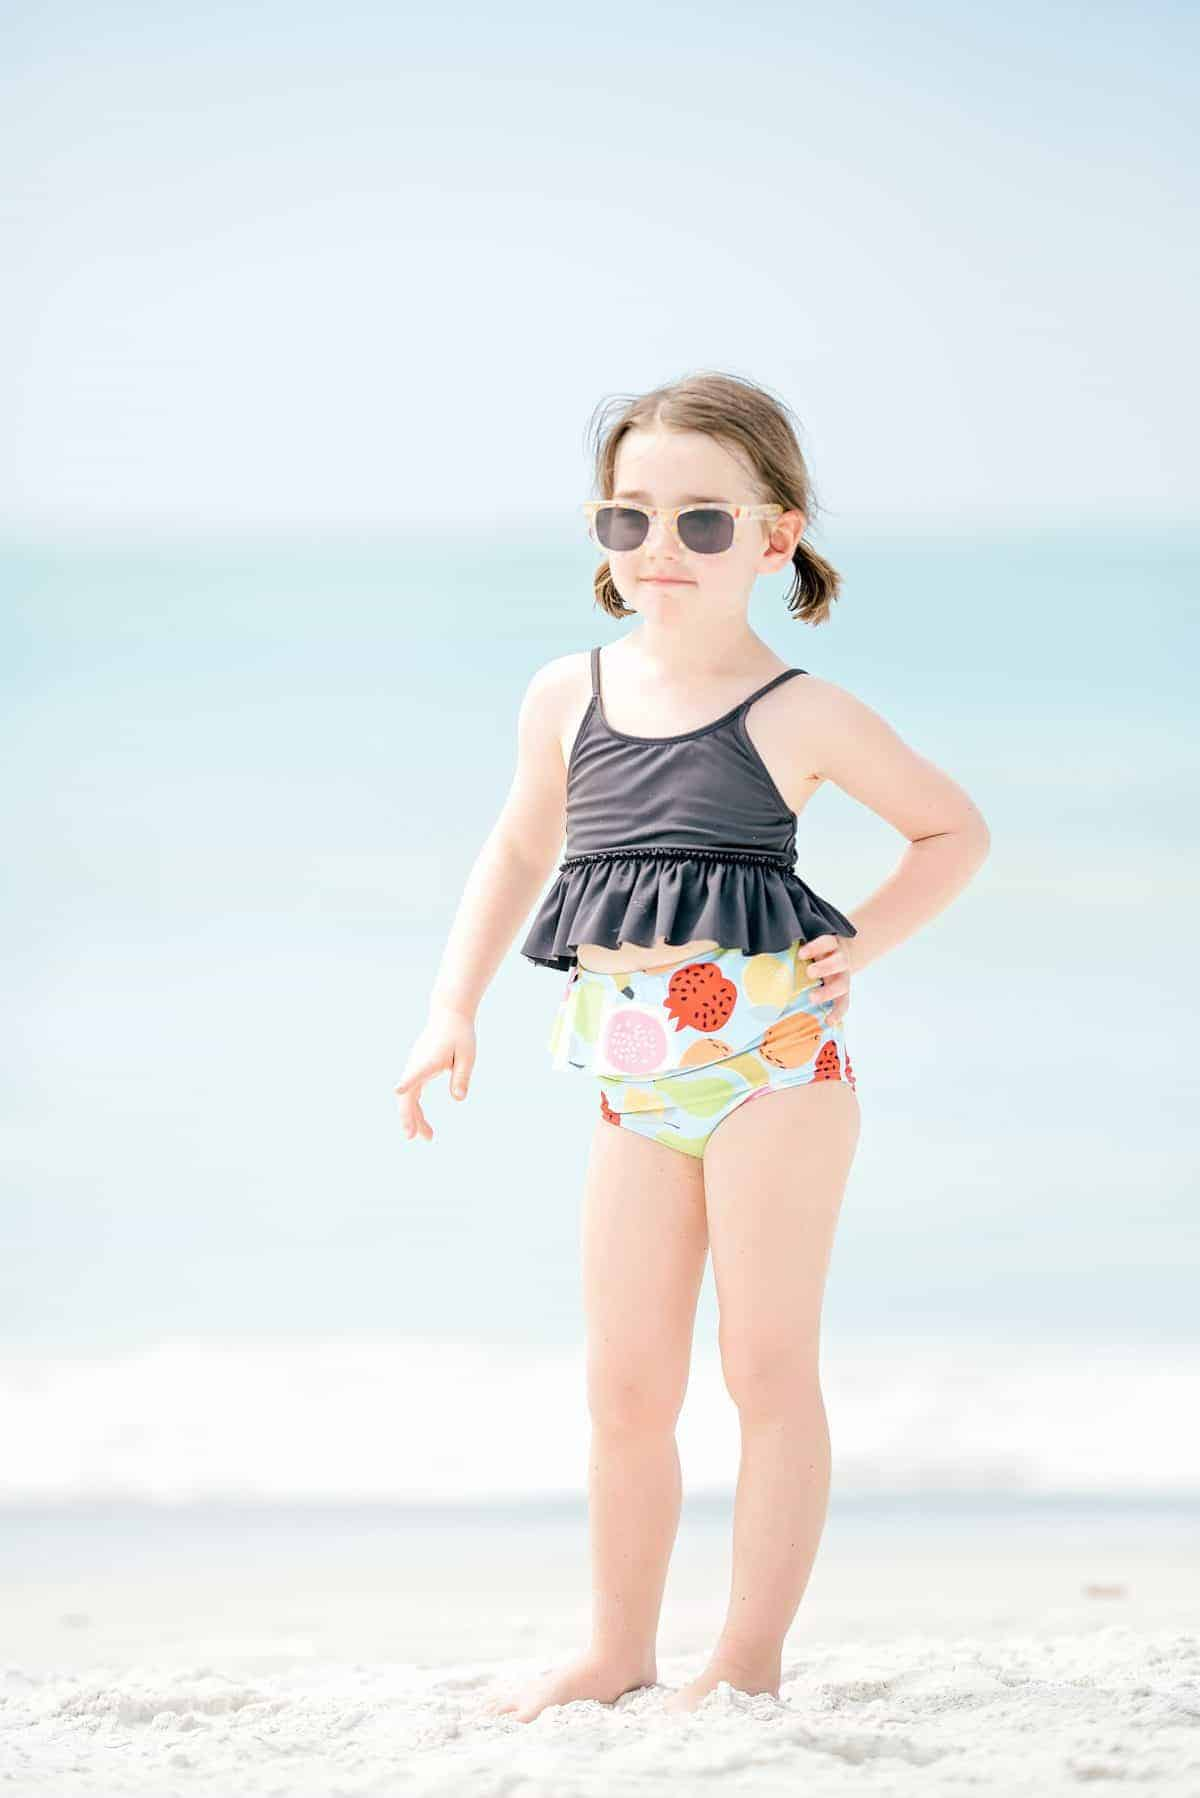 20 Tips for Taking Amazing Photos of Your Kids at the Beach